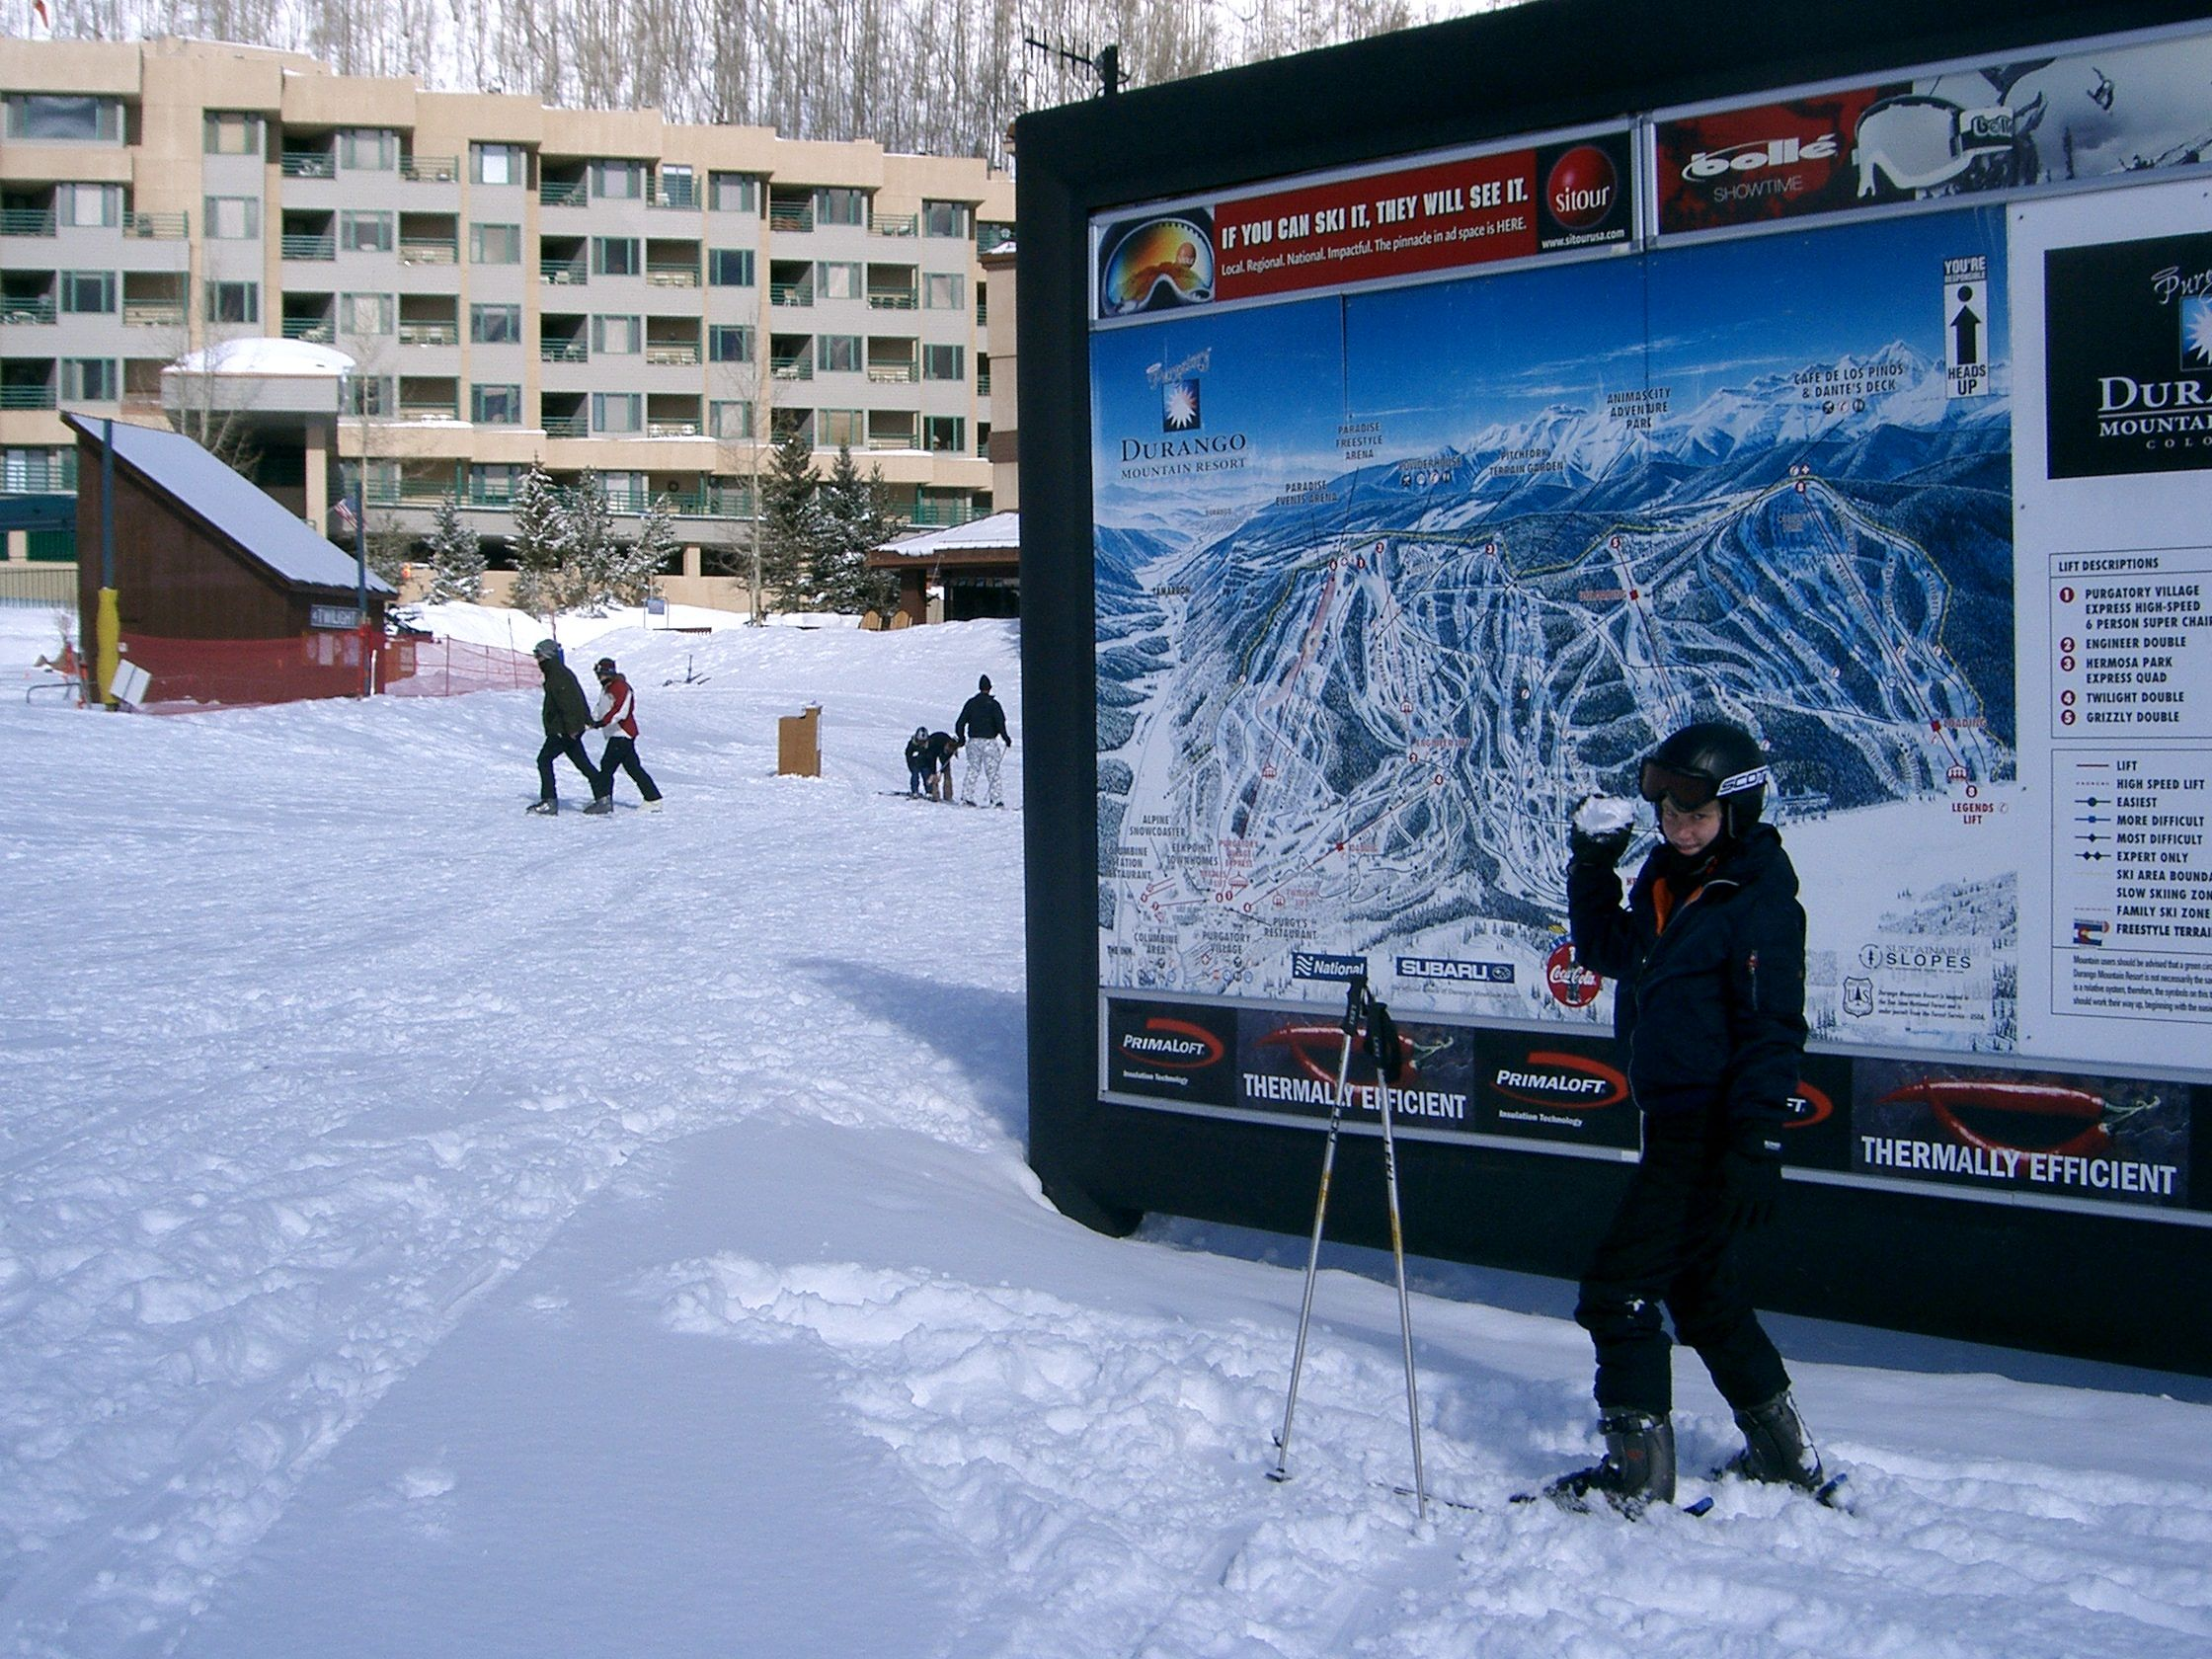 Purgatory Village Condominium Hotel at Durango Mountain Resort image